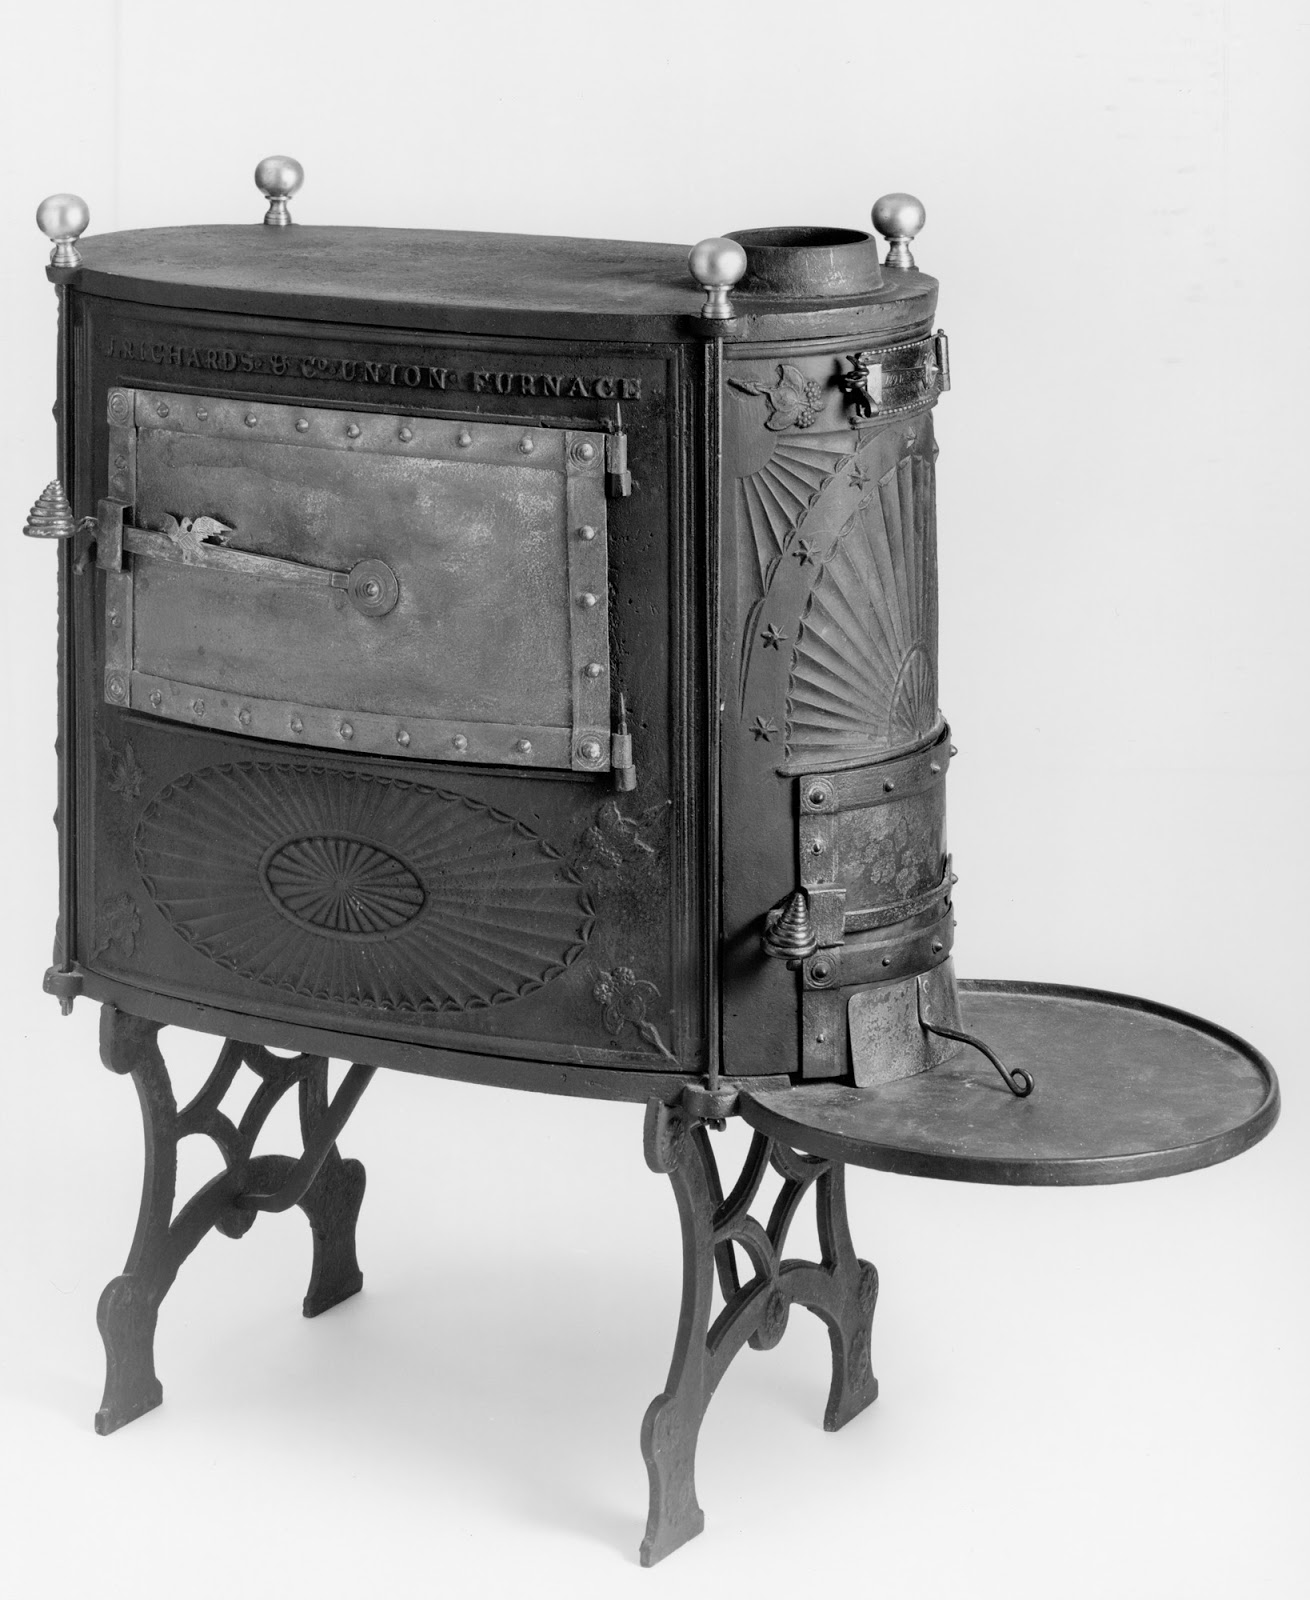 A Stove Less Ordinary: A Collection Of Stoves From American Museums, I:  Plate Stoves